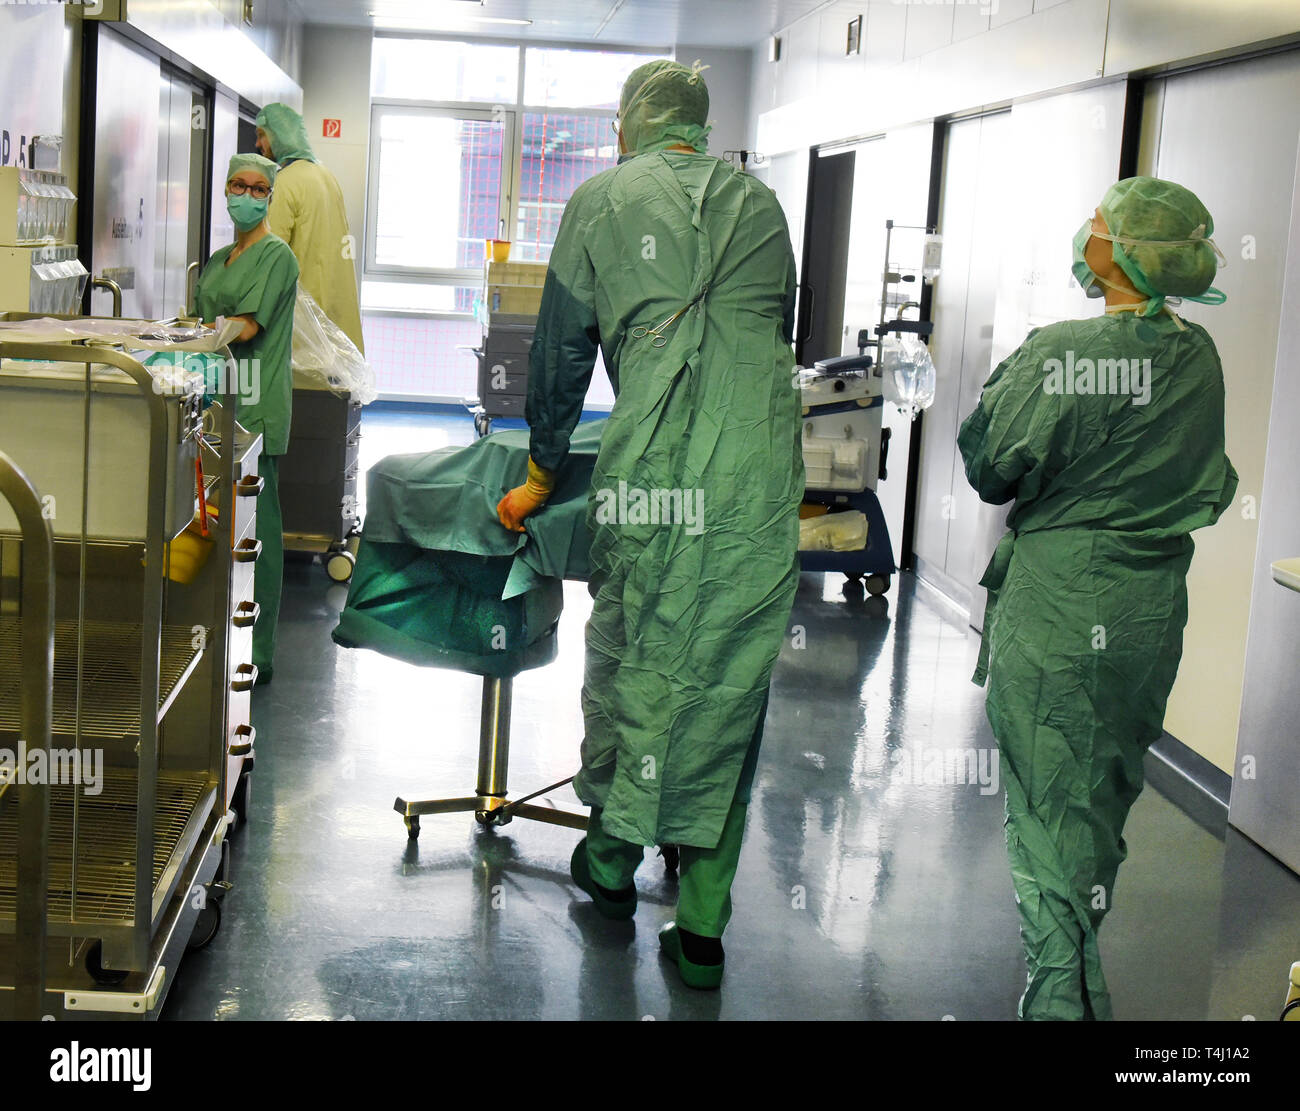 Leipzig, Deutschland. 20th Mar, 2019. 20.03.2019, Saxony, Leipzig: In the transplant center at the University Hospital, a kidney taken from a healthy donor a few minutes ago is transported to the after-surgery room in a sterile container for transplantation for the recipient. In the Transpantation Center, which was founded in 1993, more than 1040 livers and over 1000 kidneys could be transplanted in the past 25 years. Credit: Waltraud Grubitzsch/dpa-Zentralbild/ZB | usage worldwide/dpa/Alamy Live News - Stock Image